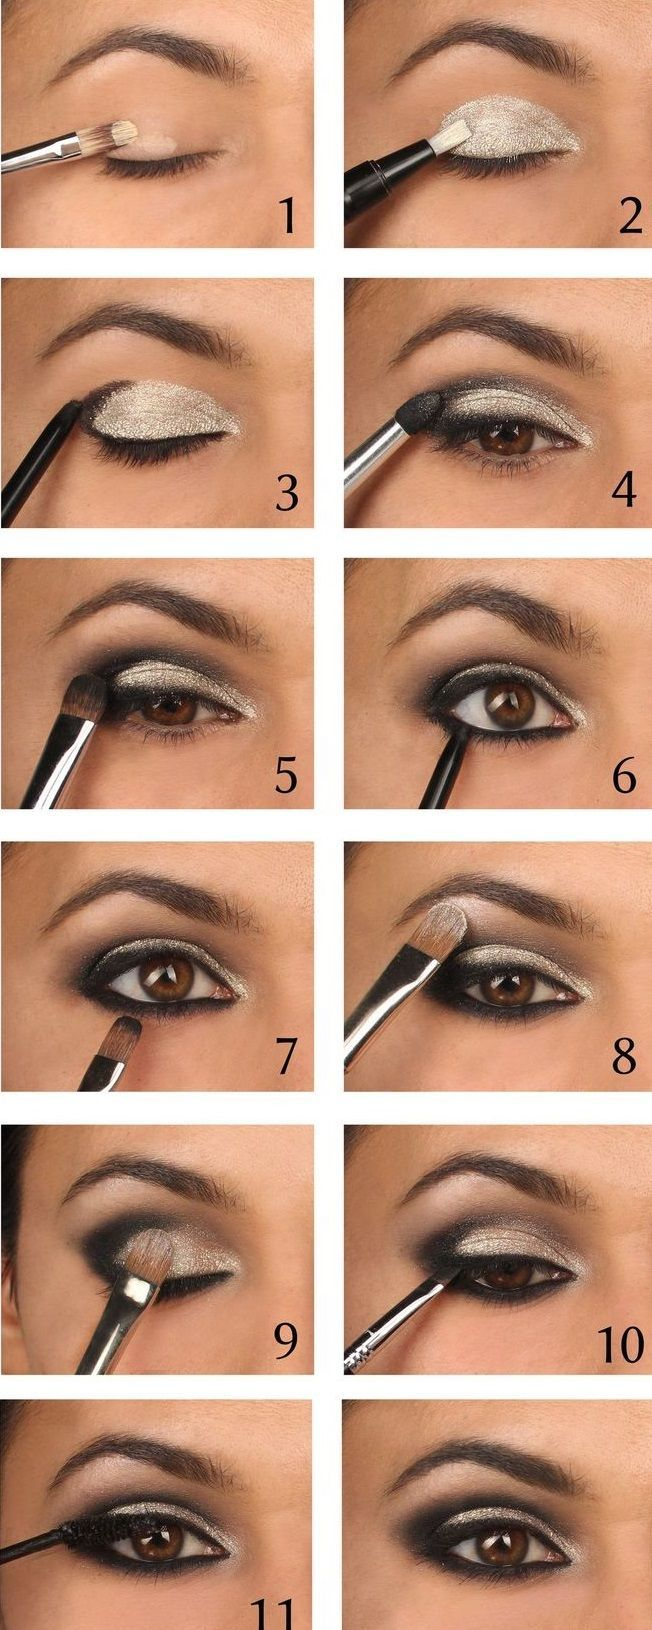 Smokey eye makeup tutorial kohl eyeliner eyeliner and make up smokey eye makeup tutorial baditri Image collections